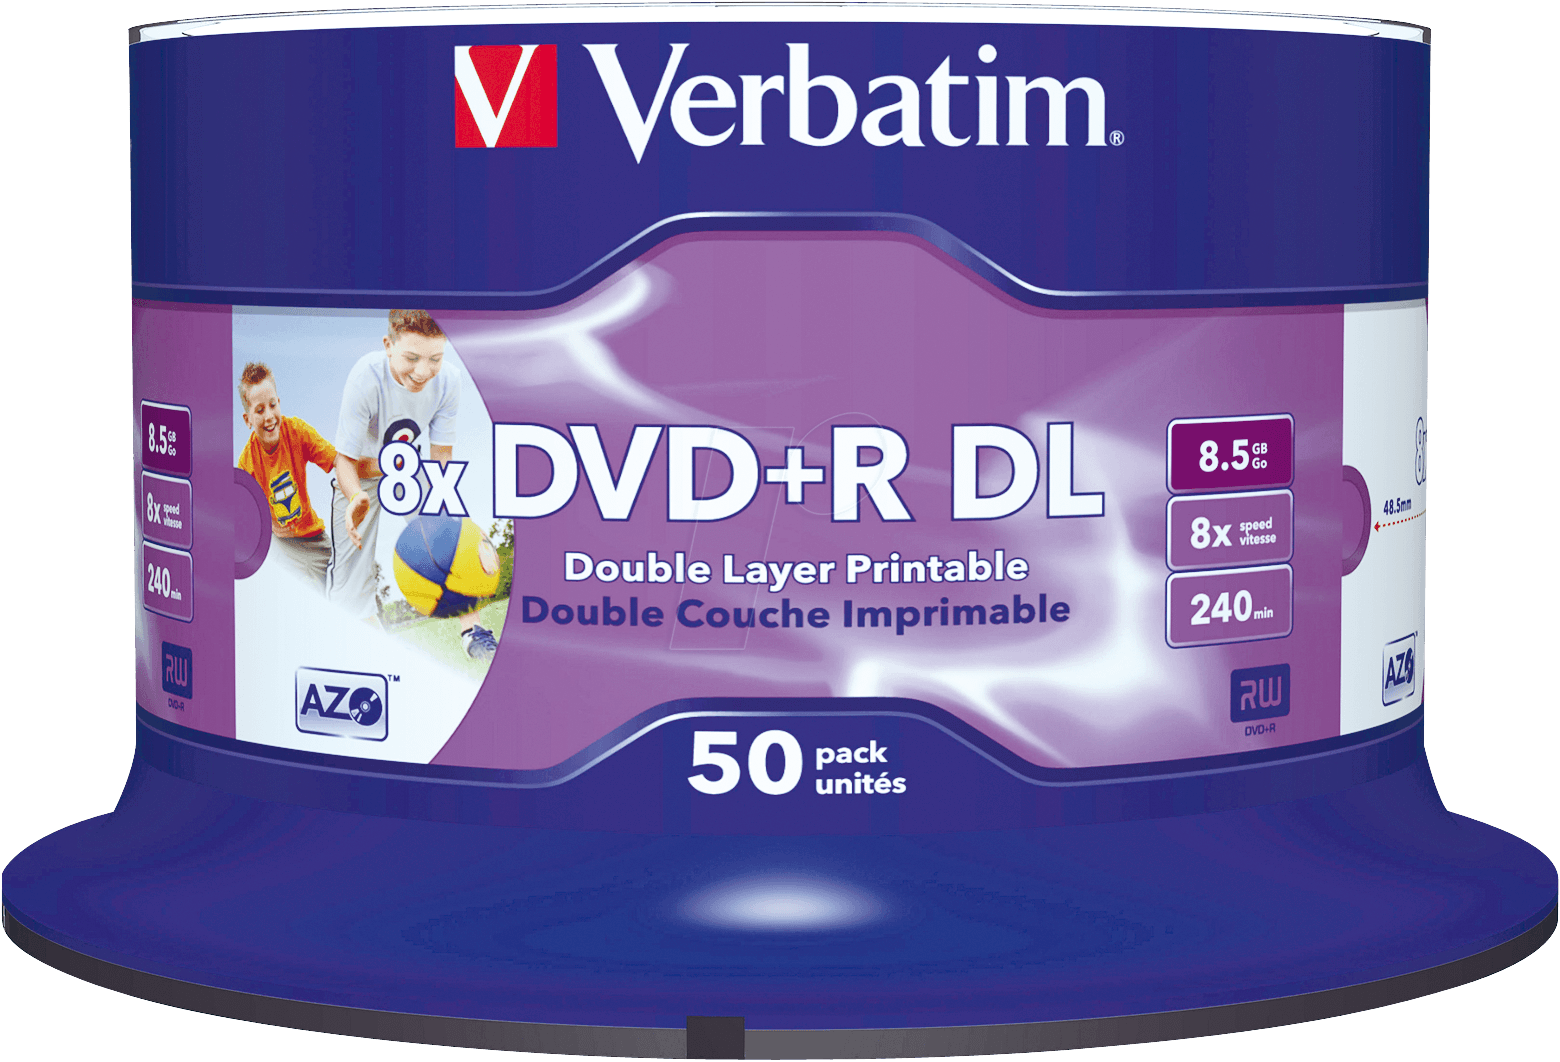 dvd r8 5 ver50pn verbatim dvd r 8 5 gb 50 discs double. Black Bedroom Furniture Sets. Home Design Ideas